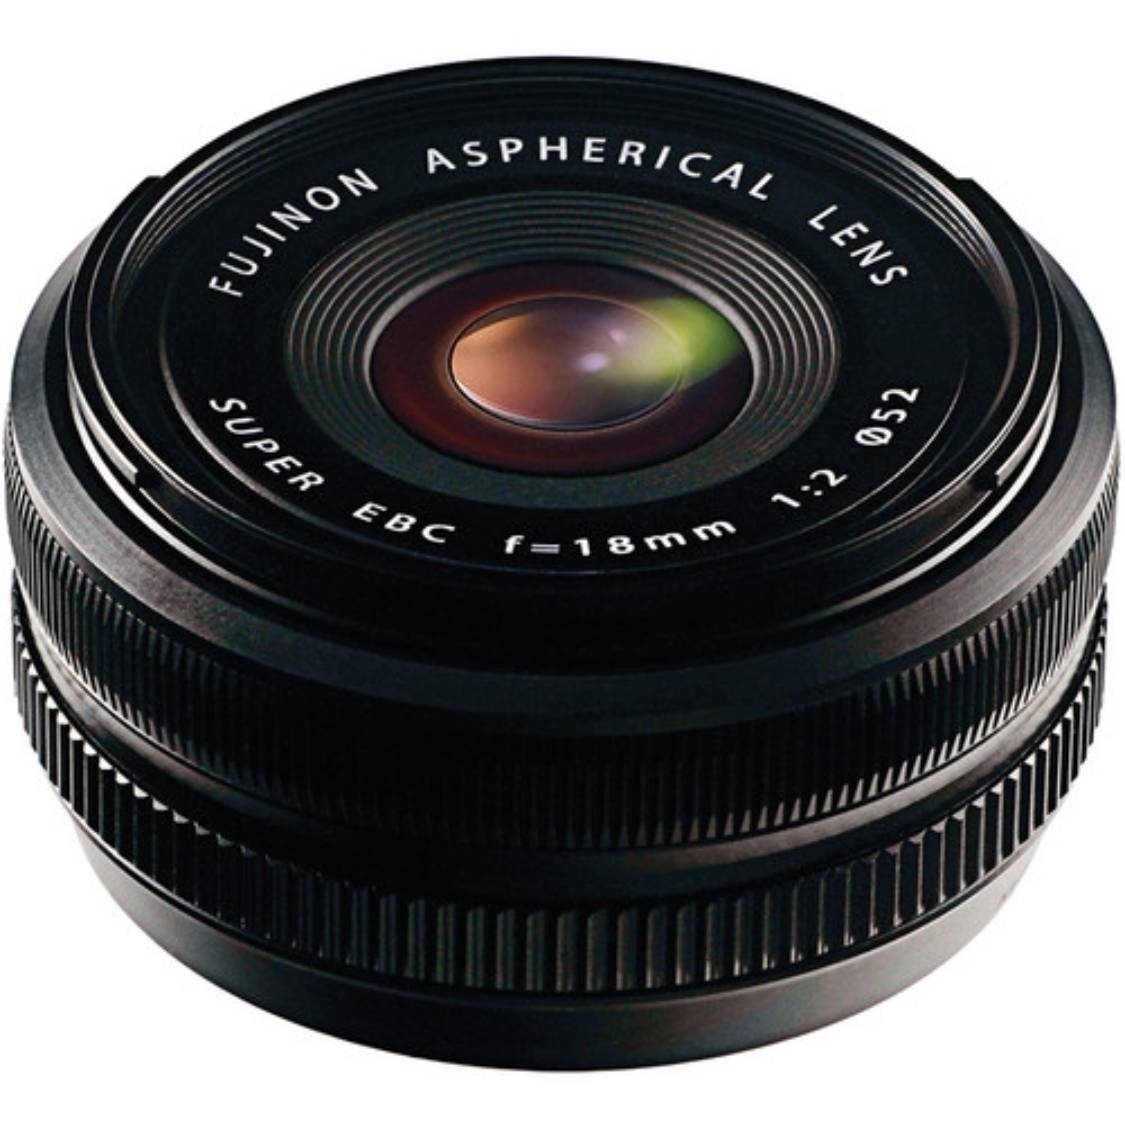 Fujifilm XF 18mm F2.0 Lens - Open Box